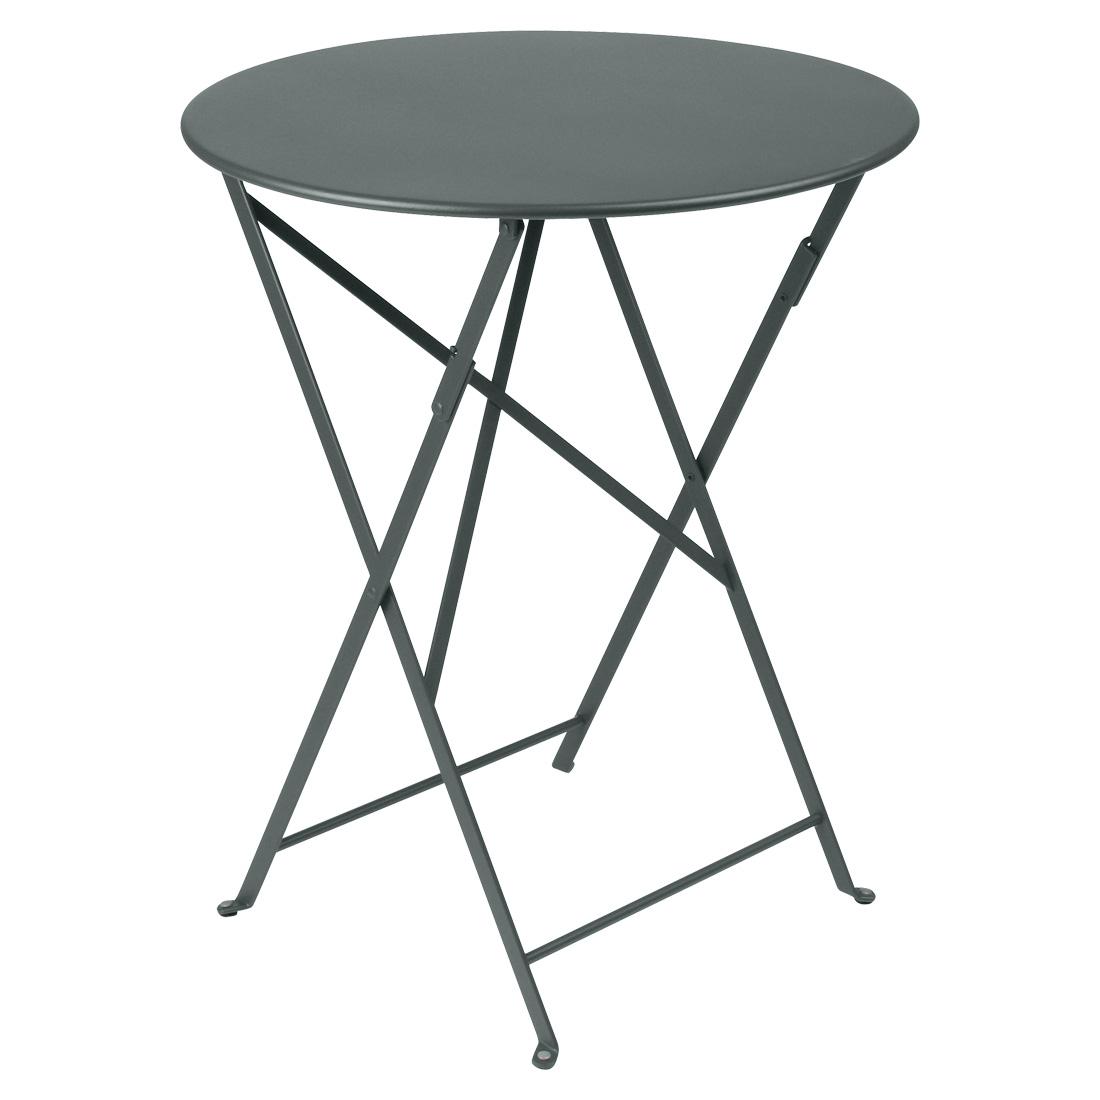 Fermob Bistro Round Table 60cm Patio Balcony Outdoor